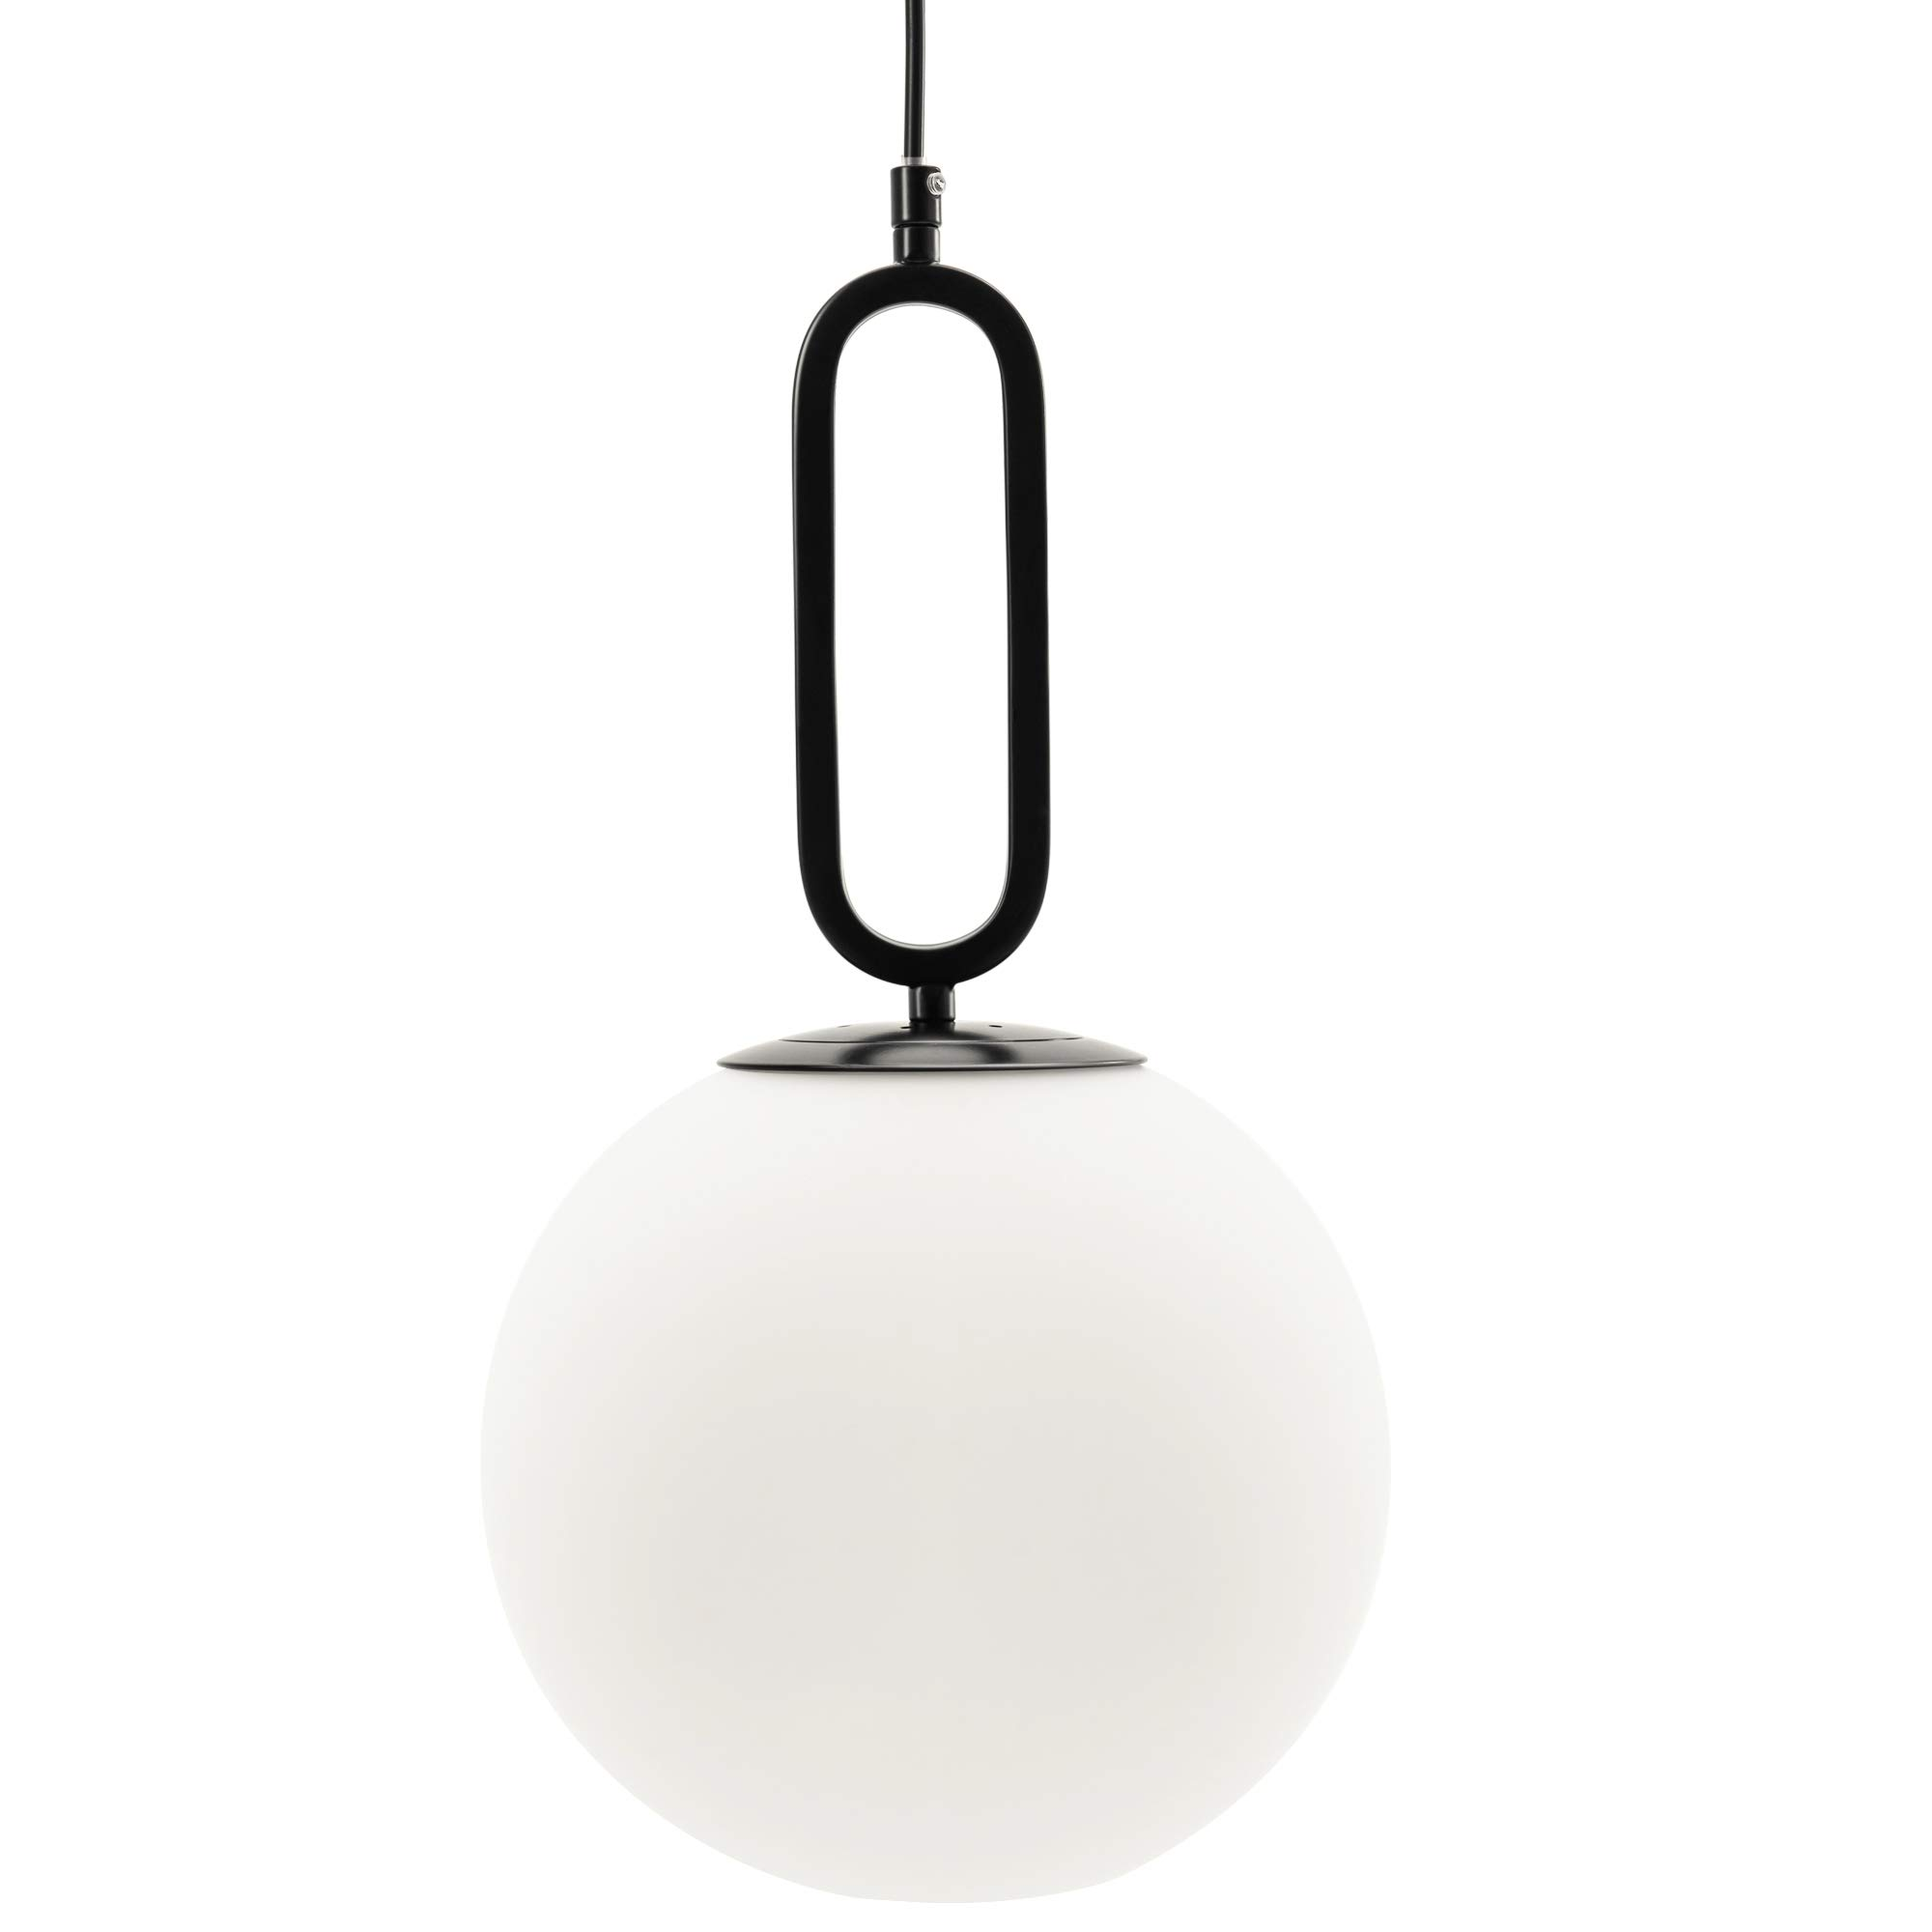 Vidalite Modern Glass Globe Pendant Light 60W, Adjustable Height For Kitchen Island Living Bedroom And Home, Matte Black - - Amazon.com